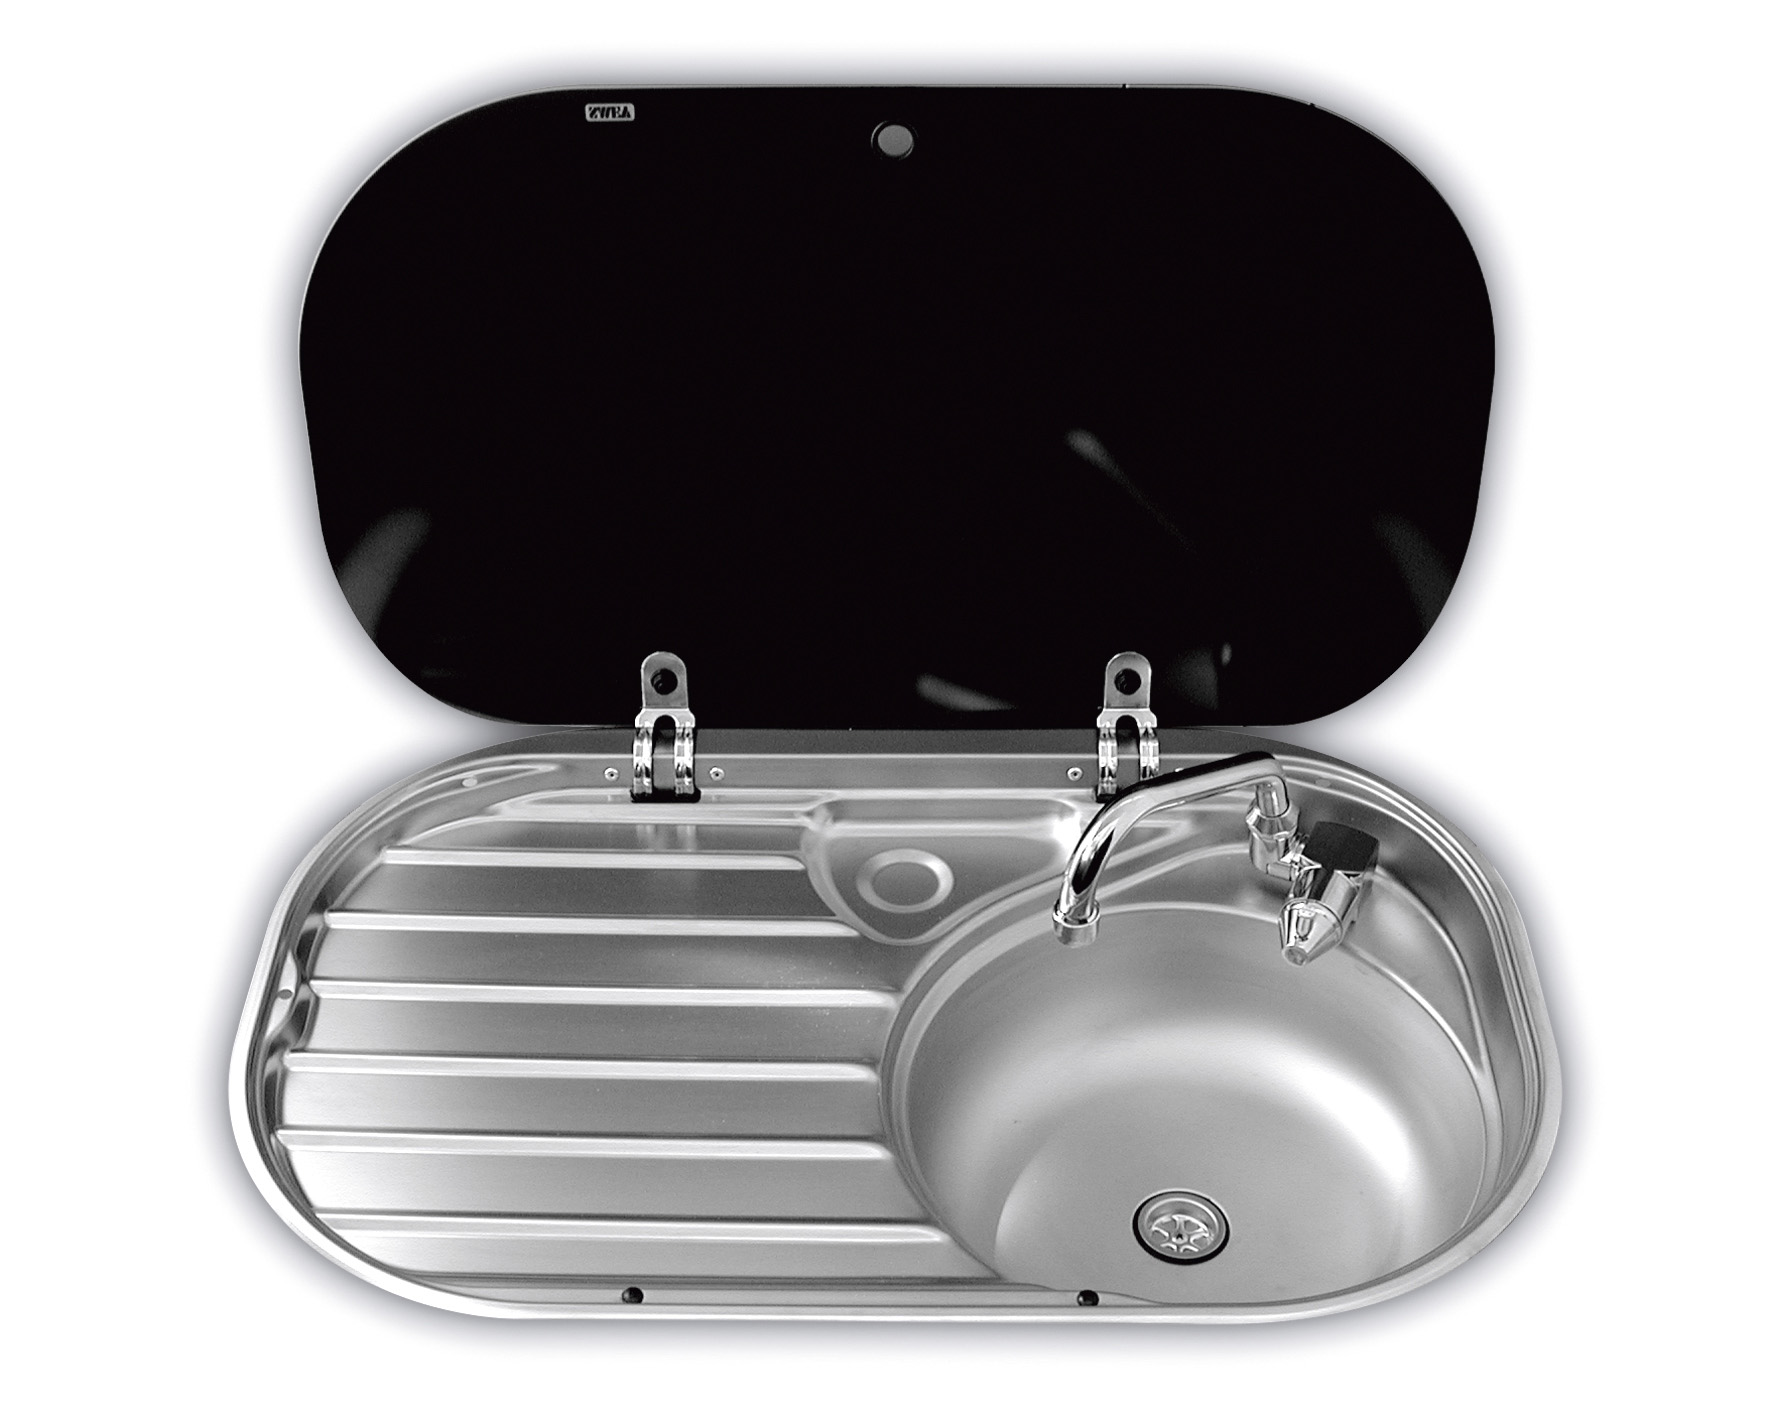 Dometic Smev 8306 Sink Amp Drainer With Glass Lid